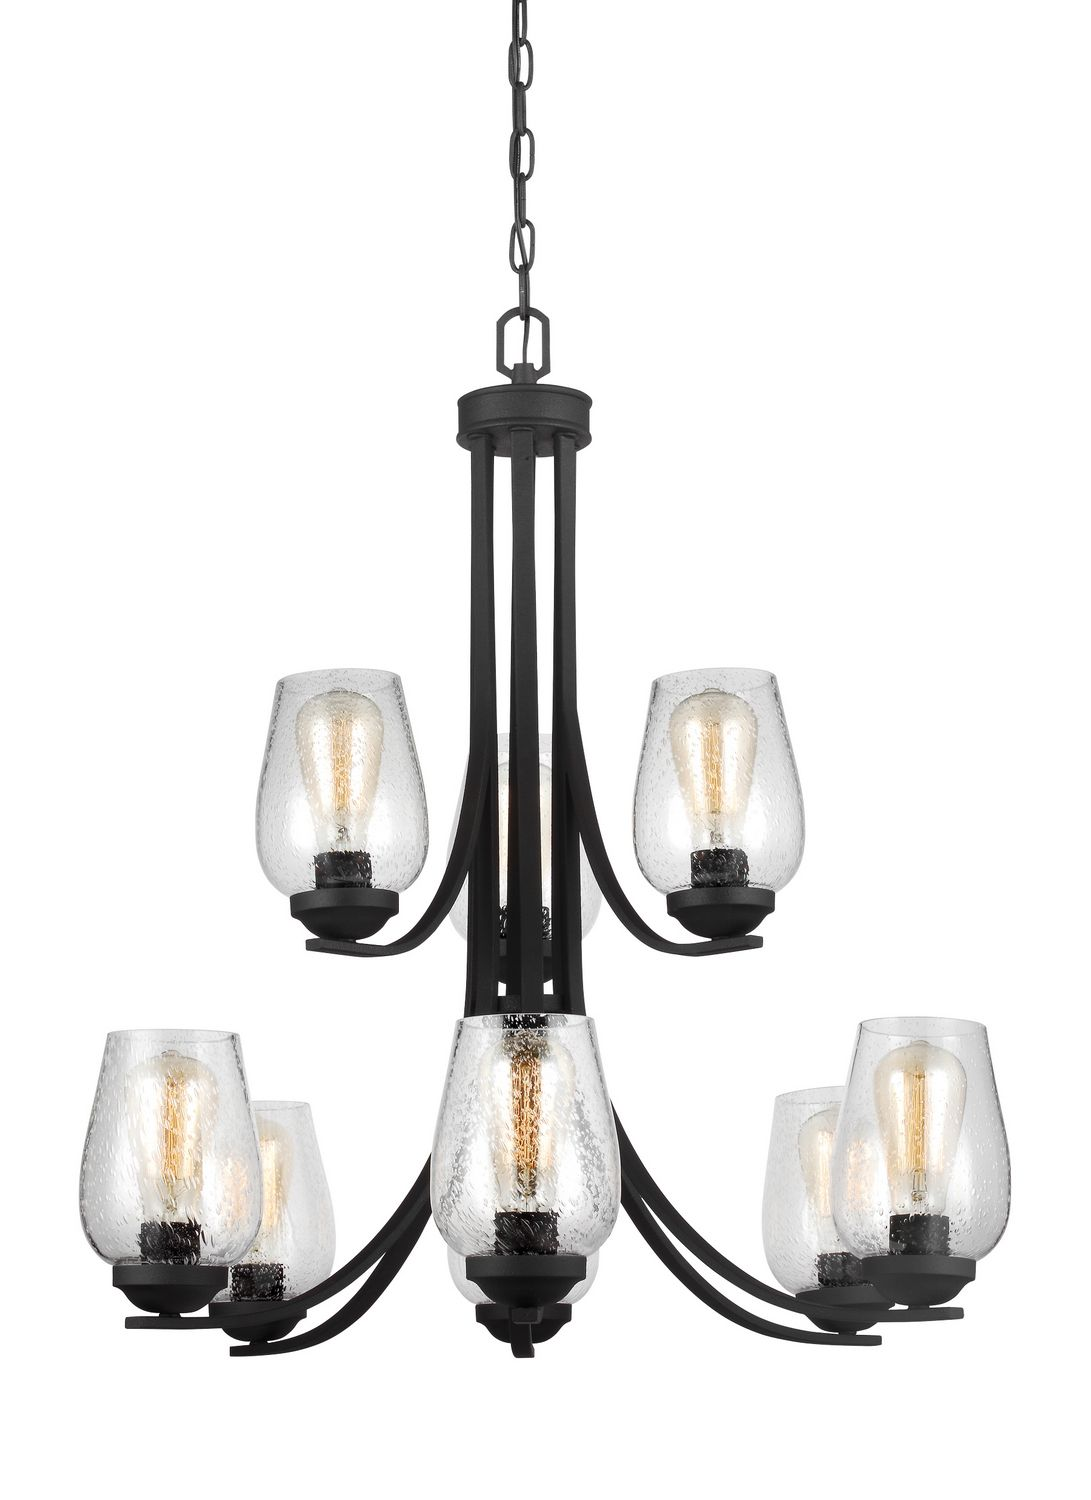 The Morill Lighting Collection By Sea Gull Lighting Combines